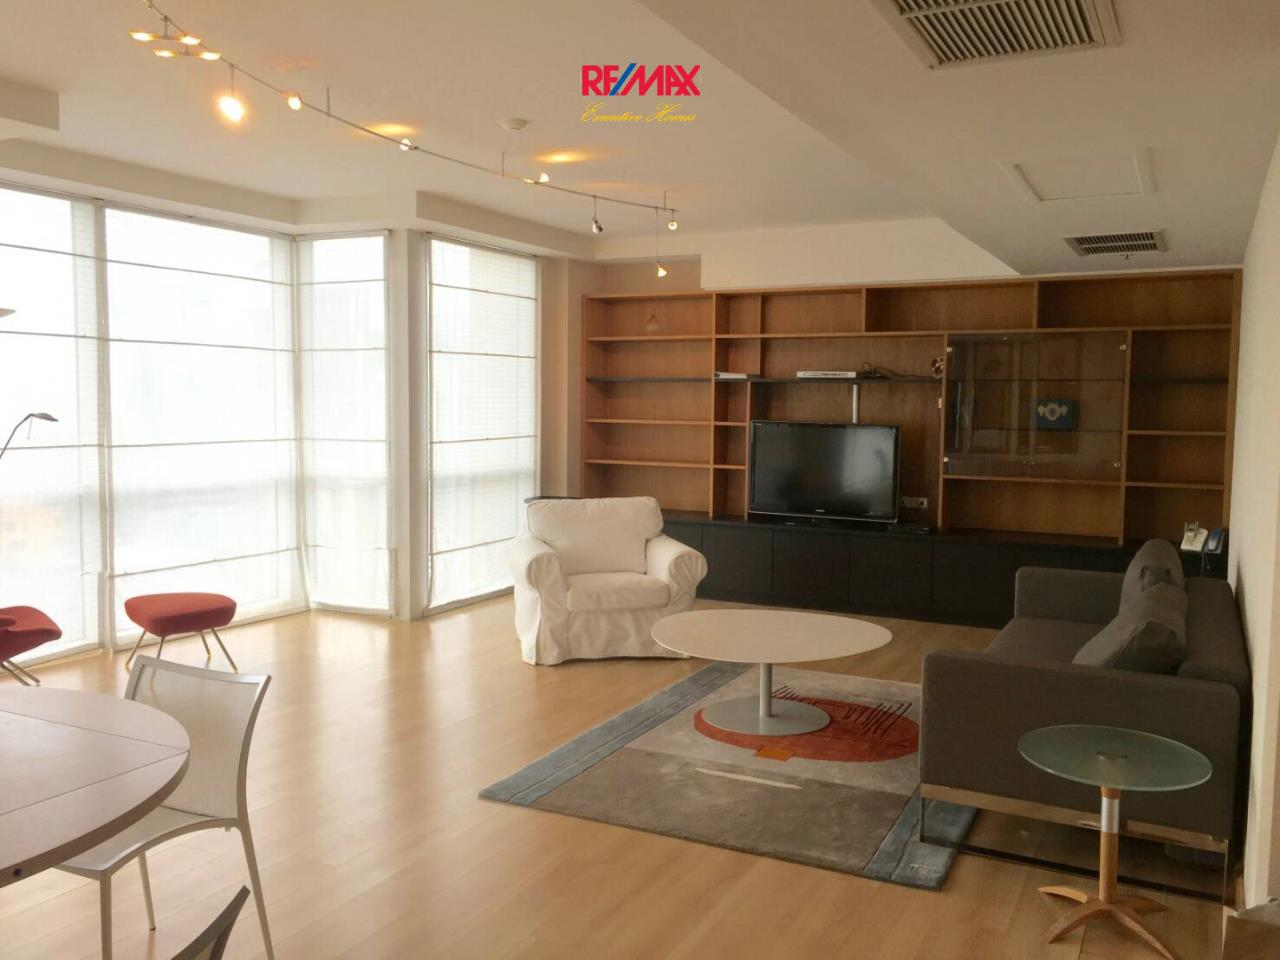 RE/MAX Executive Homes Agency's Spacious 2 Bedroom for Rent Langsuan Ville 3